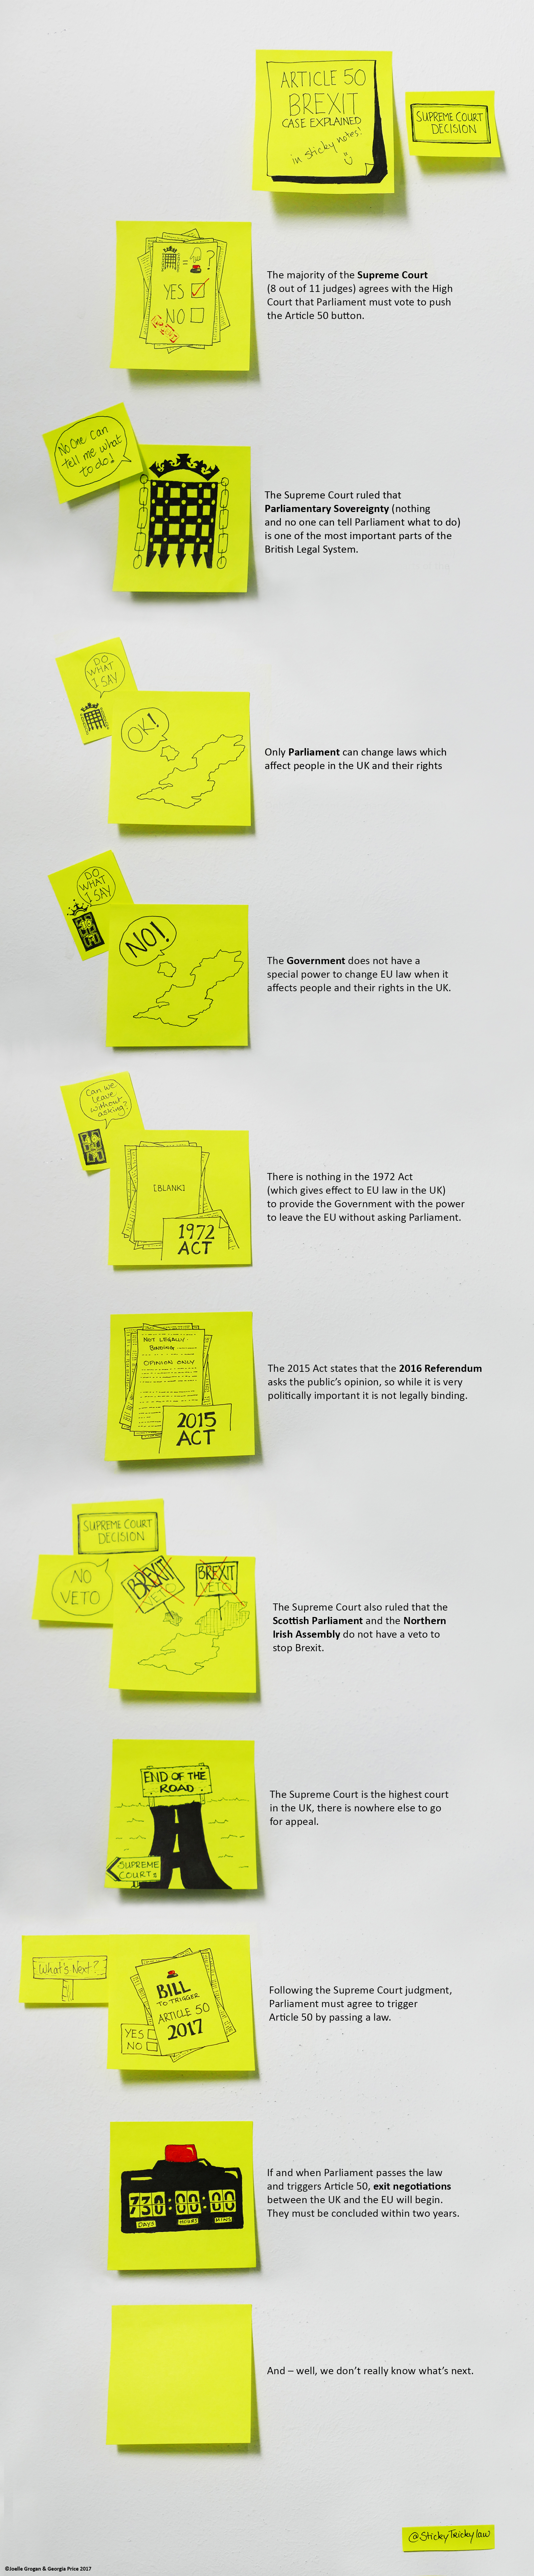 Article 50 explained in Post-it notes   Middlesex Minds